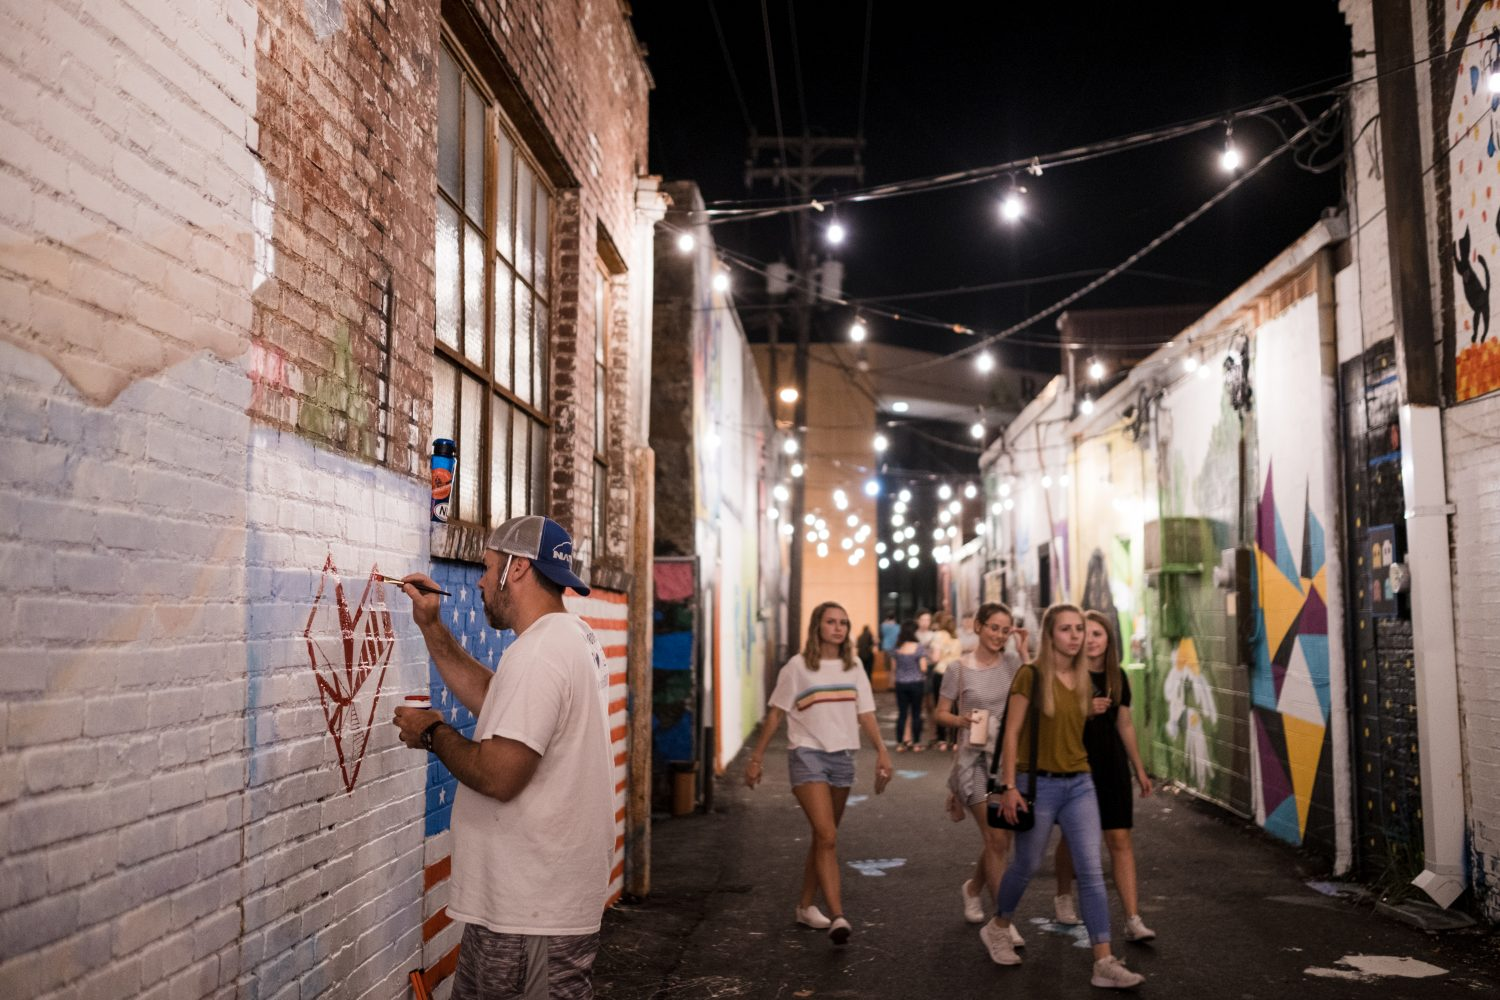 Local artists work on Art Alley murals live at downtown events like First Friday Art Night and Beats and Eats.